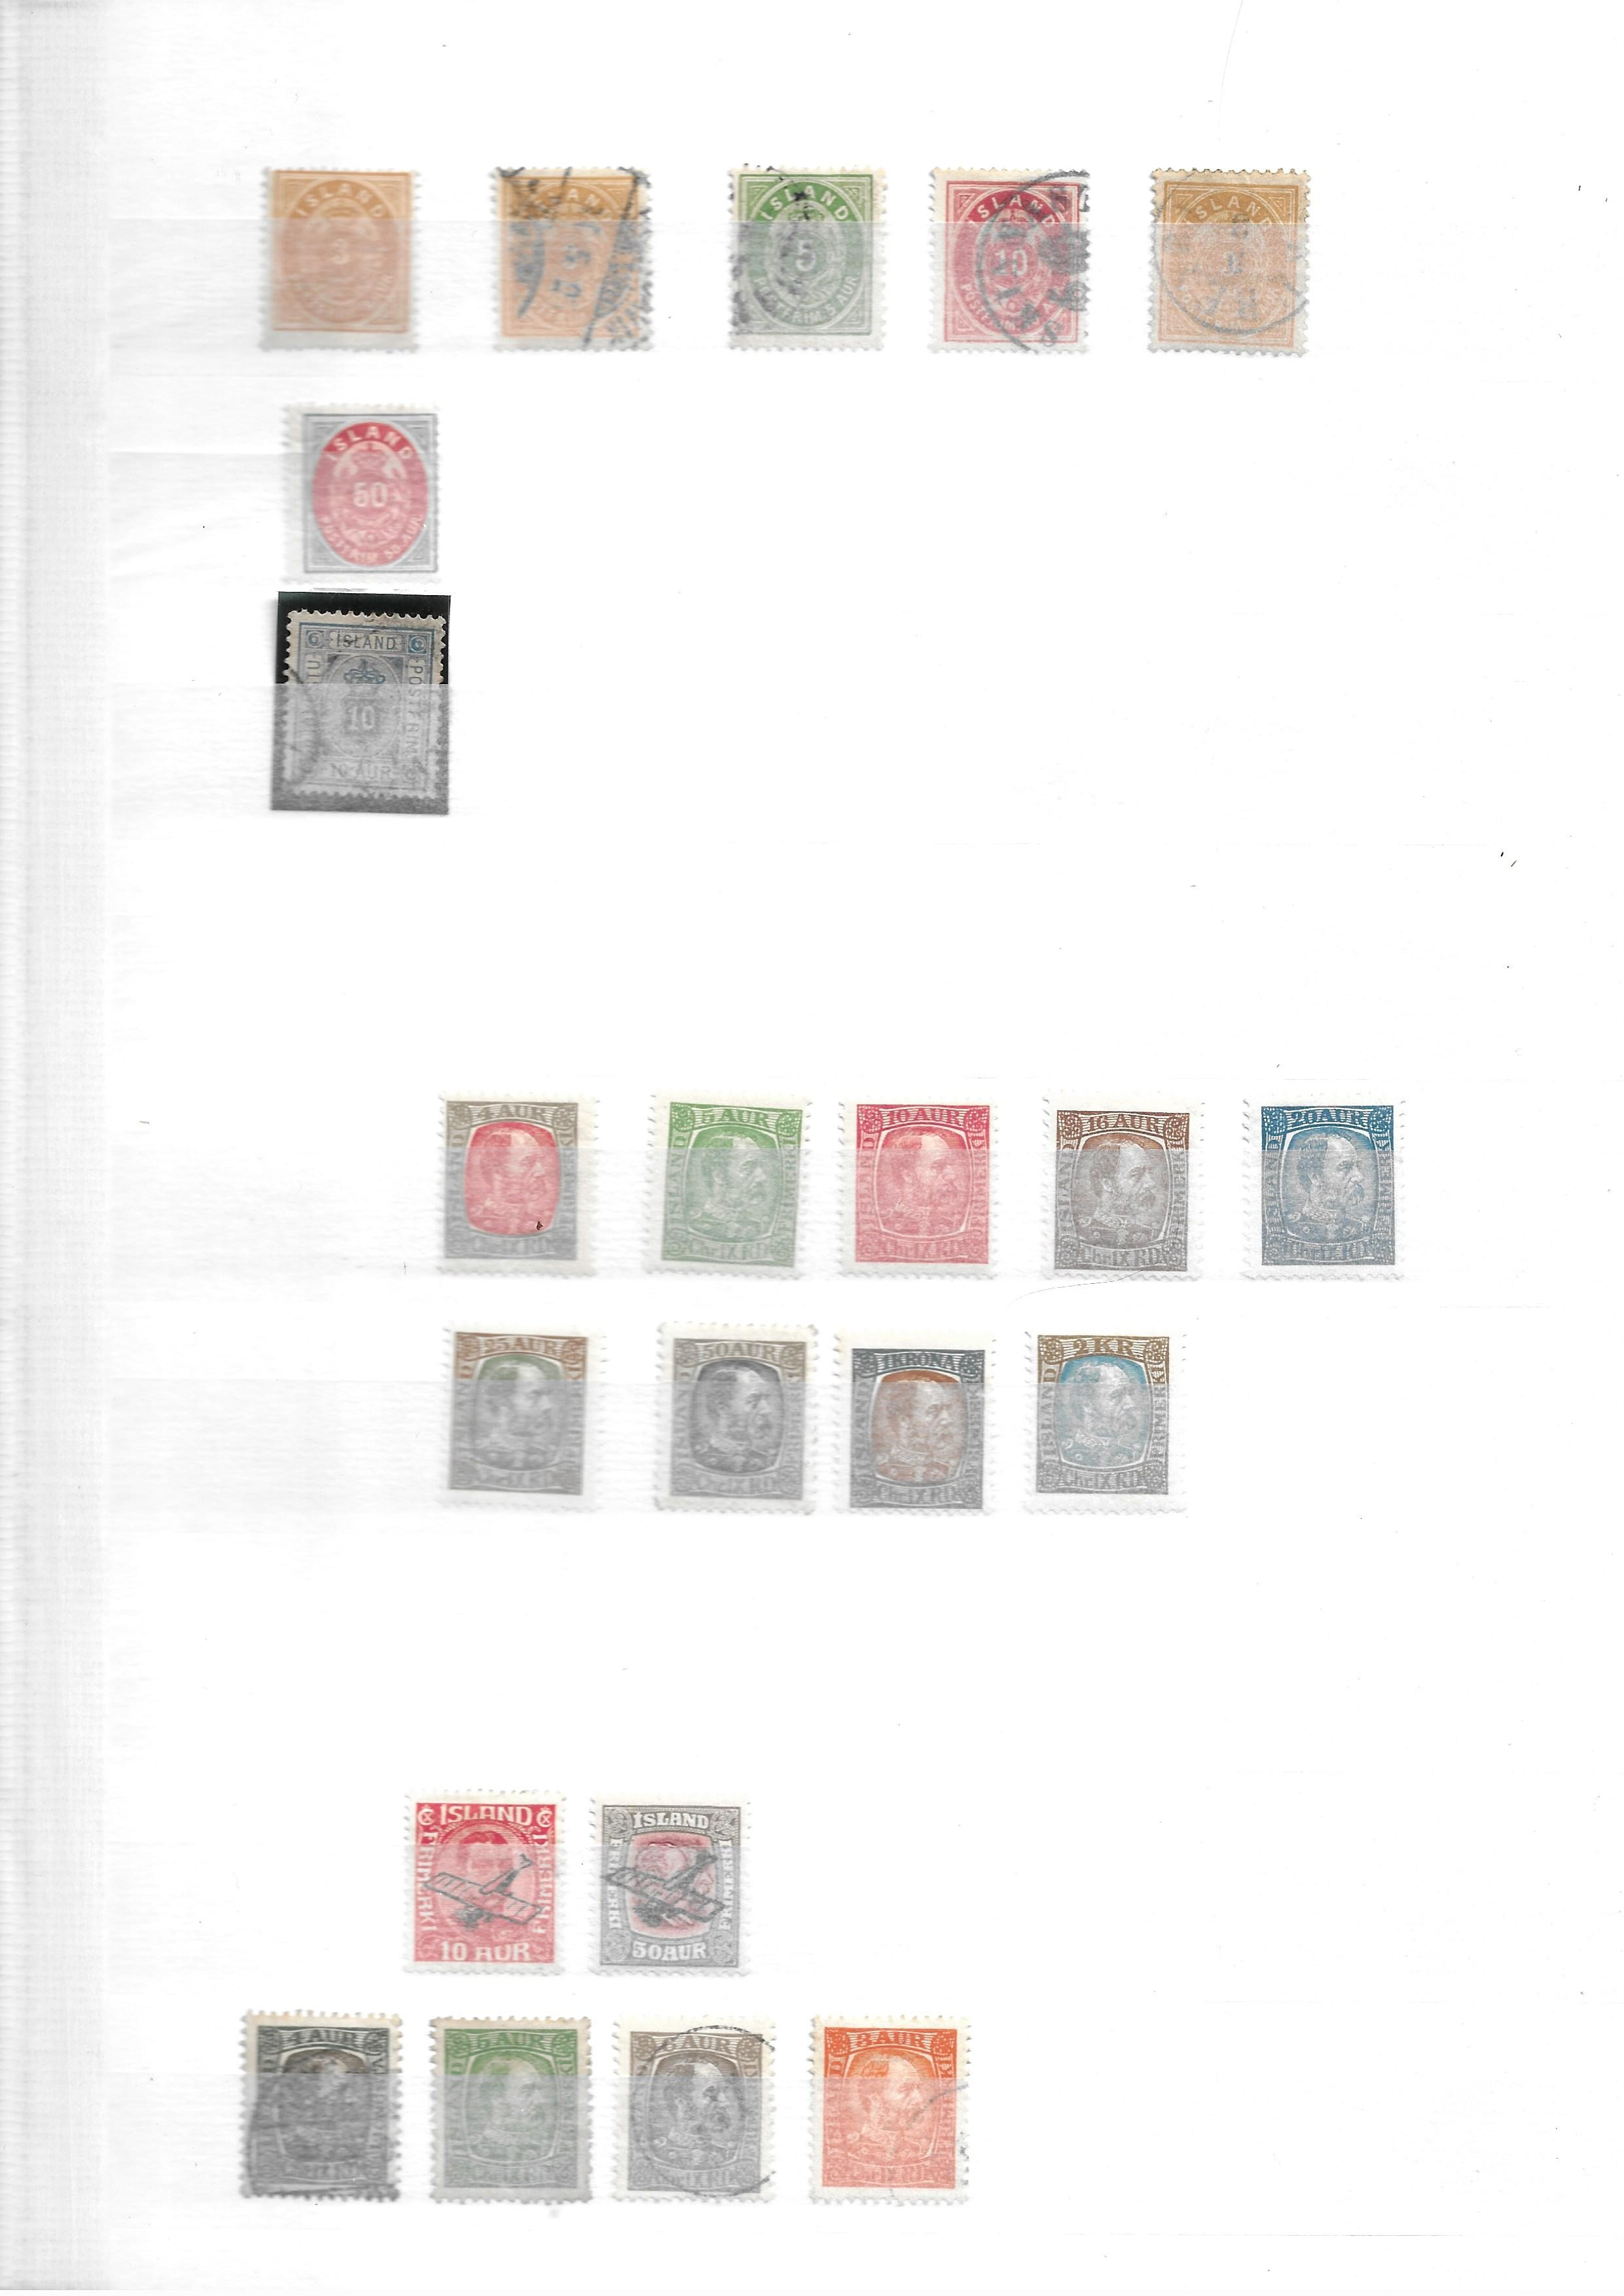 Iceland 1882-1940 unused and used collection on stockcards with sets and better values - Image 2 of 5